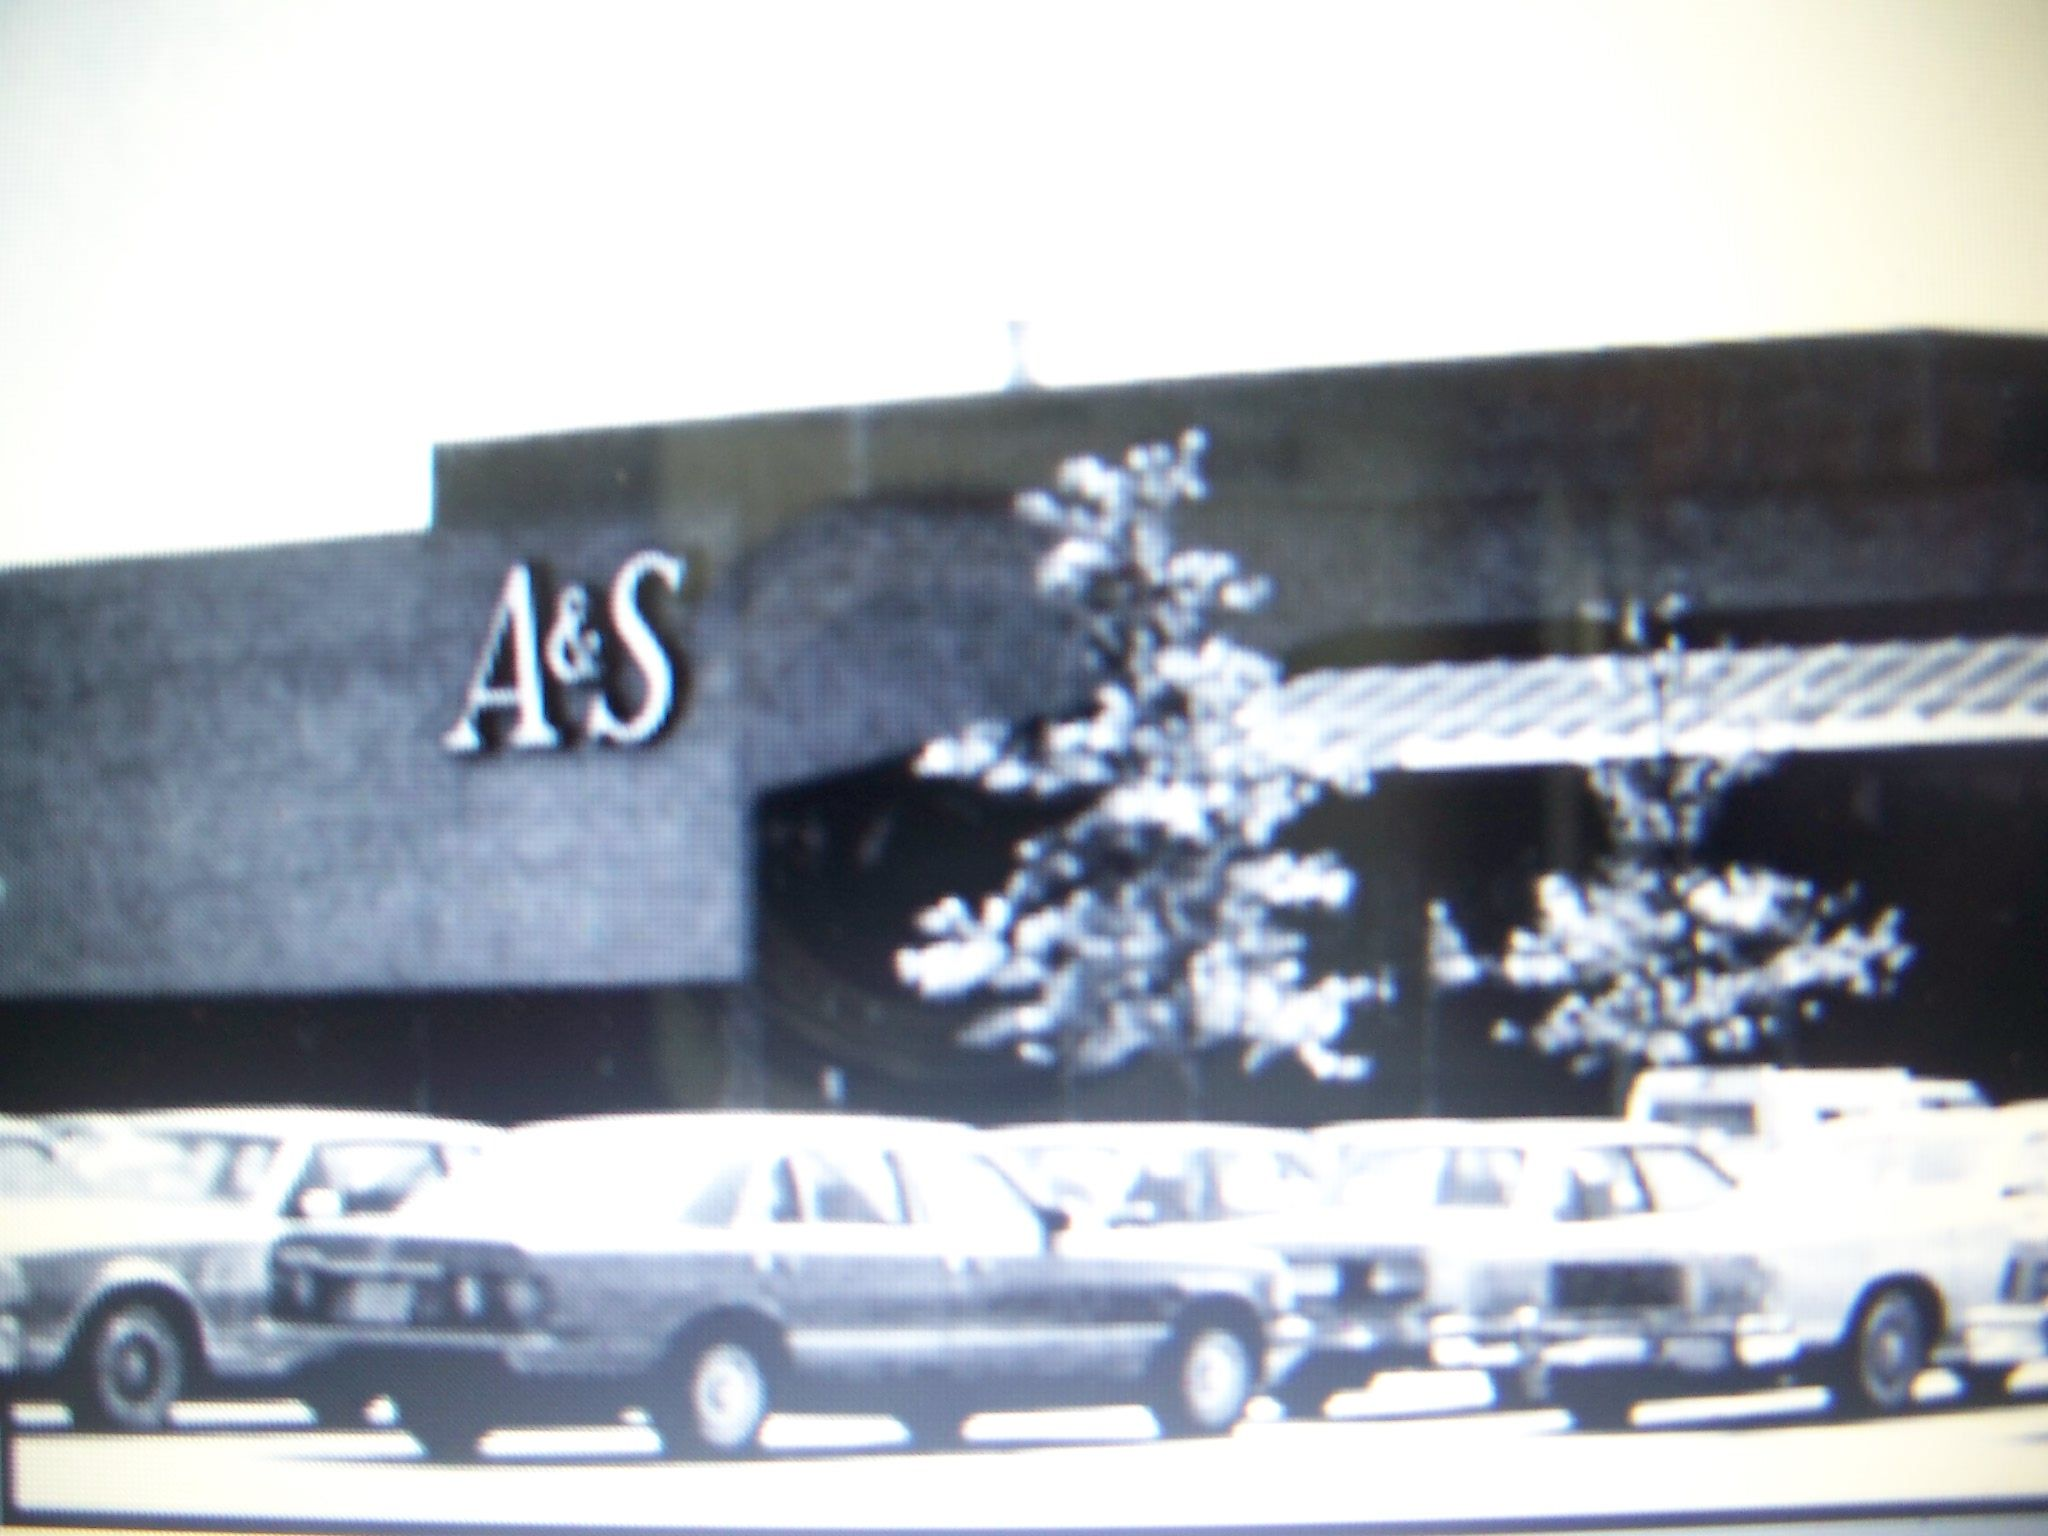 1fbf103610d48e85ee03822ac5d7272d - Is There A Macy's In Jersey Gardens Mall